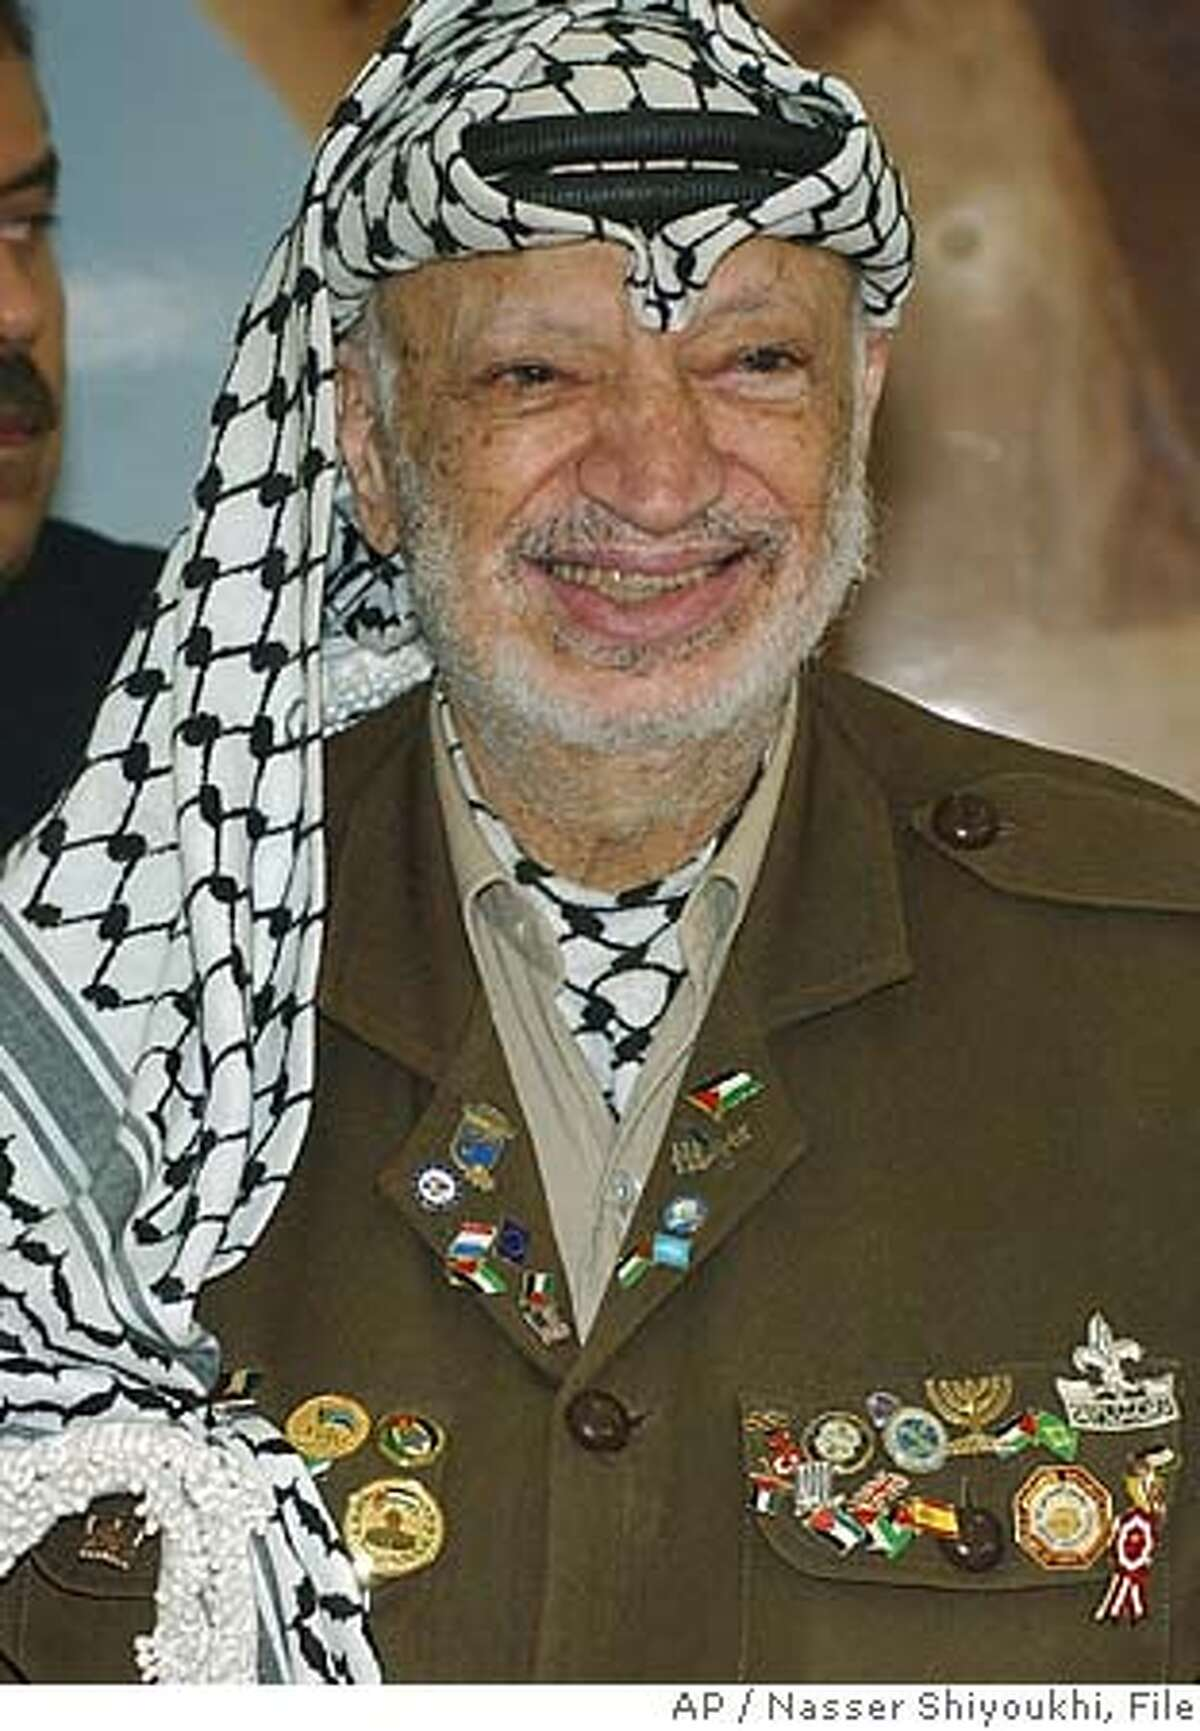 ** FILE ** Palestinian leader Yasser Arafat smiles during a gathering with supporters at his headquarters in the West Bank town of Ramallah, in this Tuesday Aug. 3, 2004 photo. Yasser Arafat's medical records do not give conclusive results as to what caused his death, The New York Times and the Haaretz newspapers reported Thursday. A stroke was the final blow that killed Arafat, but it is not clear what led to a deterioration in his health, The New York Times concluded in its report. The records show that Arafat's symptoms make it highly unlikely that he died of AIDS or poisoning, the newspaper said. Arafat died in a Paris hospital Nov. 11 at the age of 75. He had fallen ill in mid-October, and doctors originally said he had the flu. (AP Photo/Nasser Shiyoukhi)